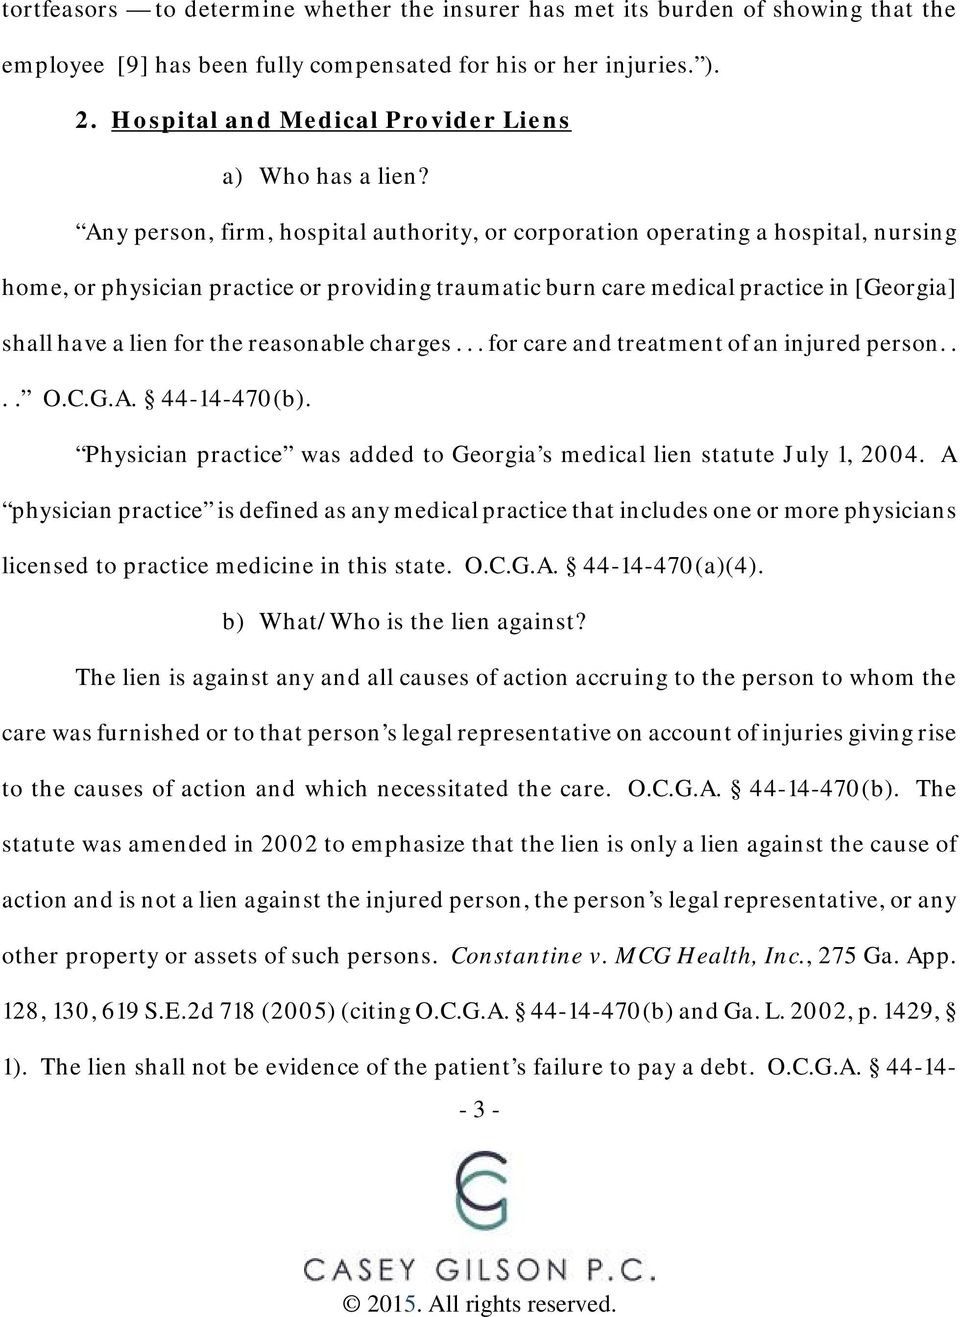 Any person, firm, hospital authority, or corporation operating a hospital, nursing home, or physician practice or providing traumatic burn care medical practice in [Georgia] shall have a lien for the